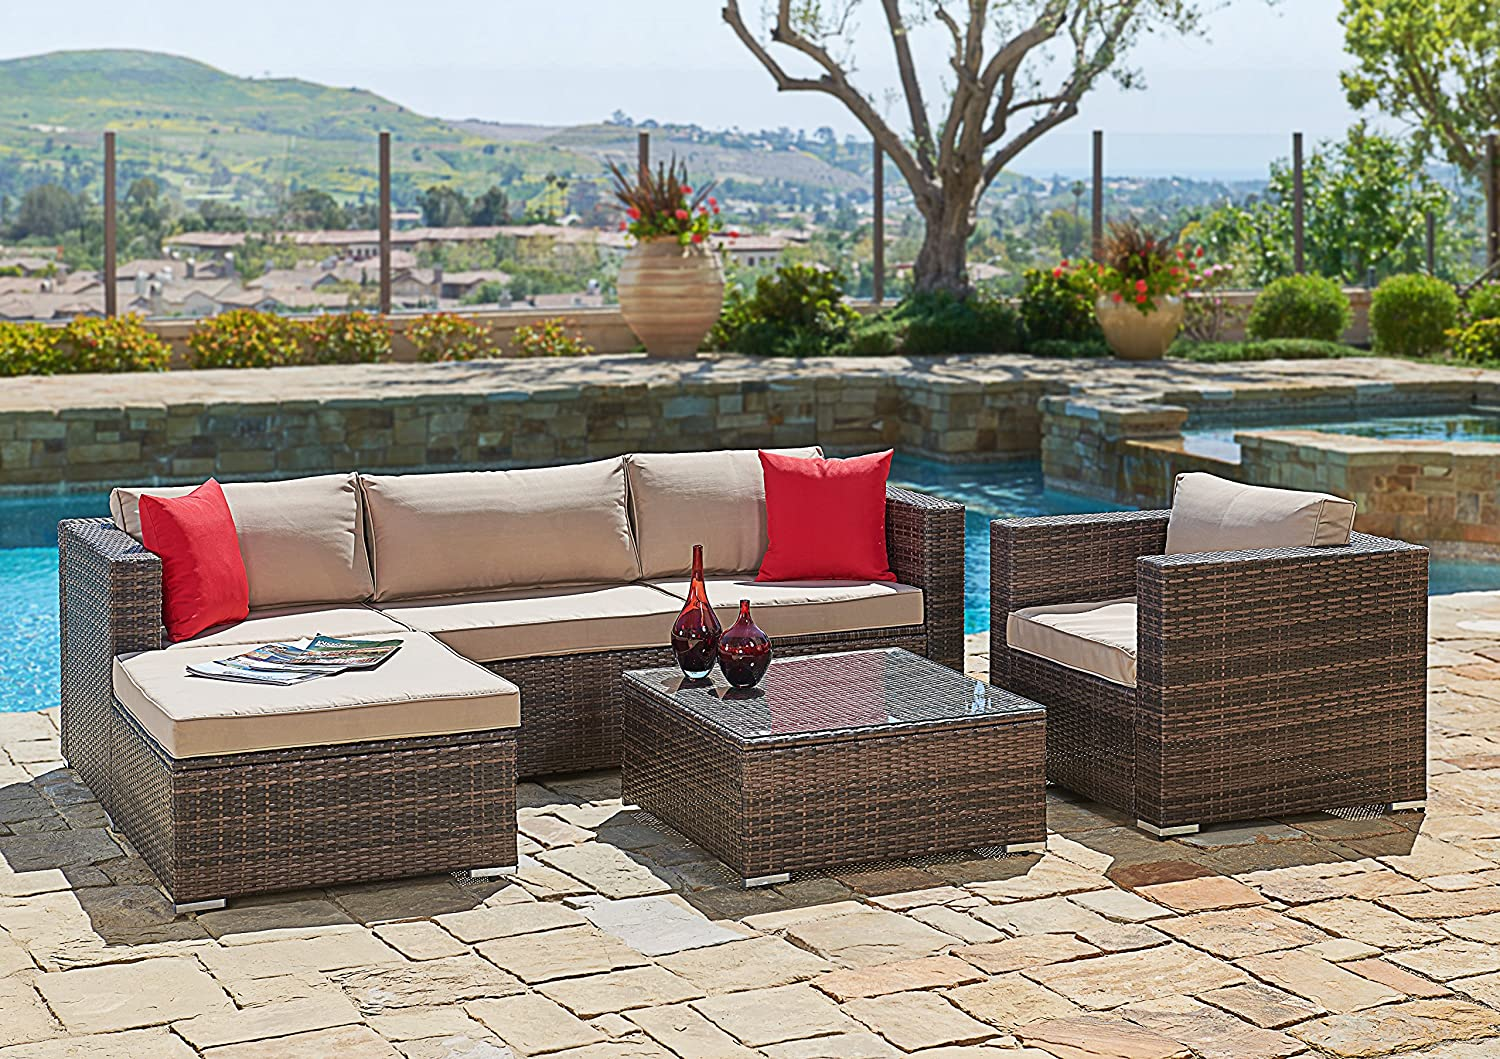 Amazoncom Suncrown Outdoor Furniture Sectional Sofa Chair 6